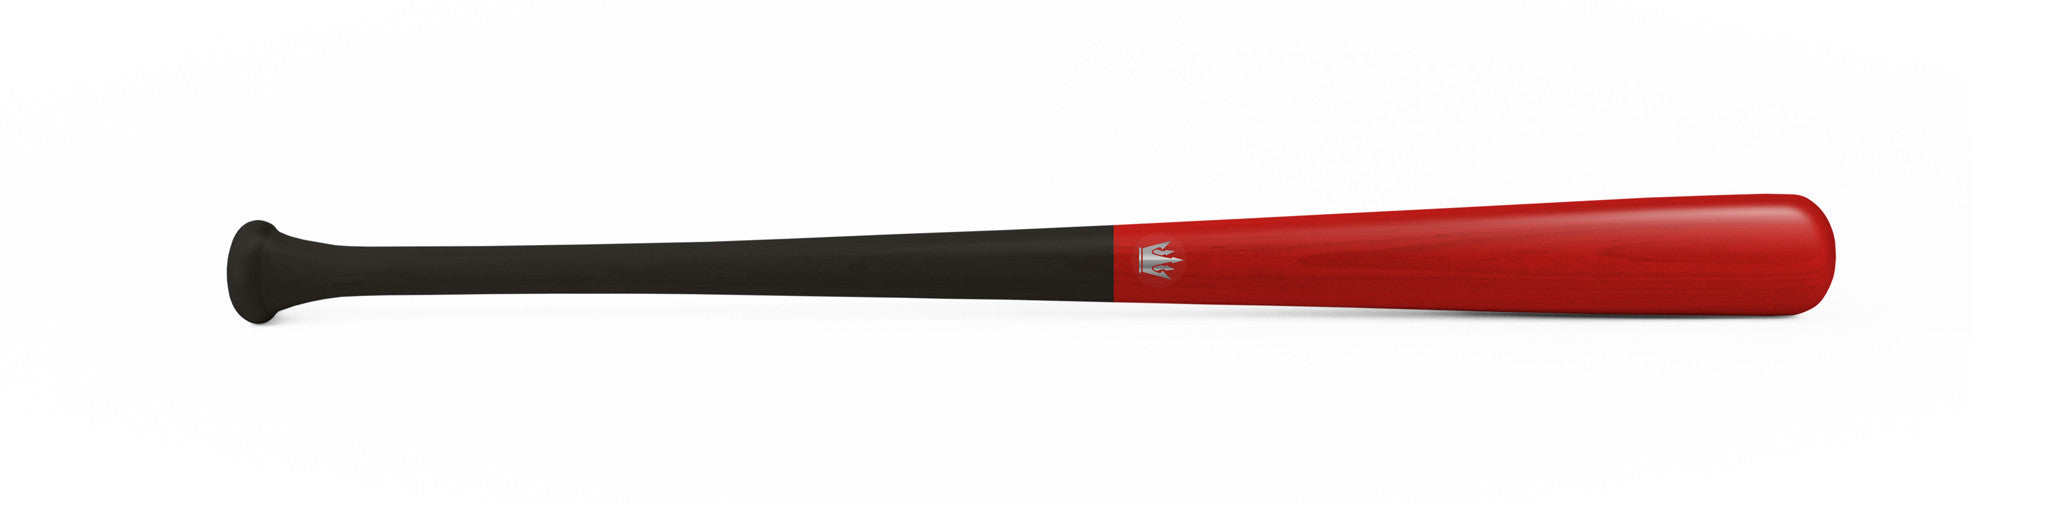 Wood bat - Maple model Y110 Black Red - 5